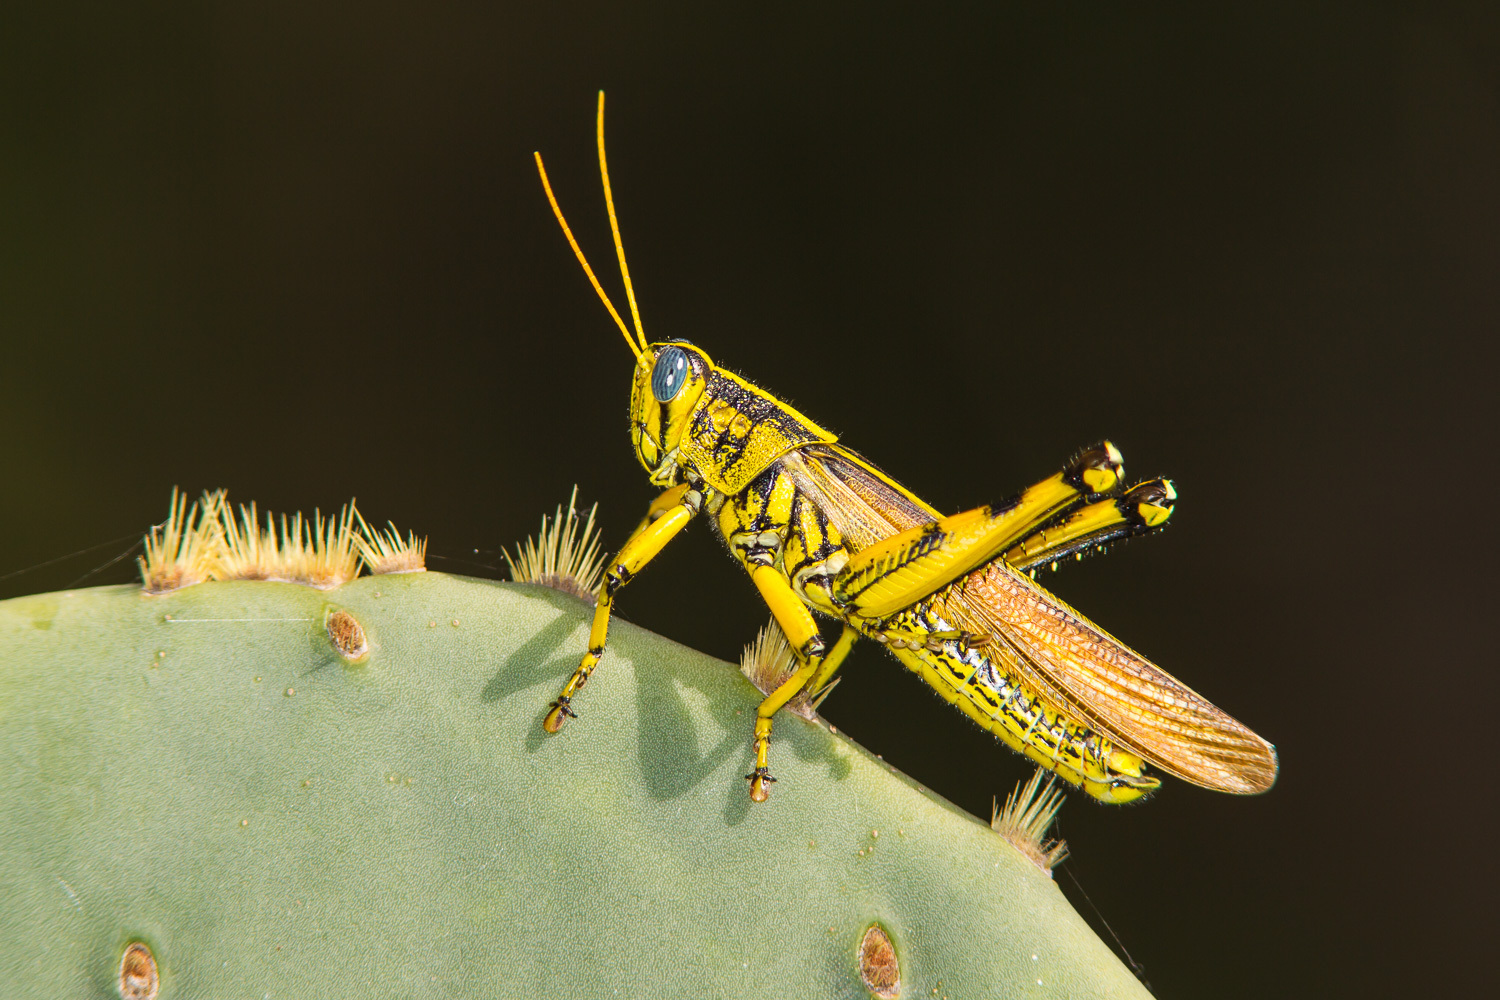 Image of Spotted Bird Grasshopper